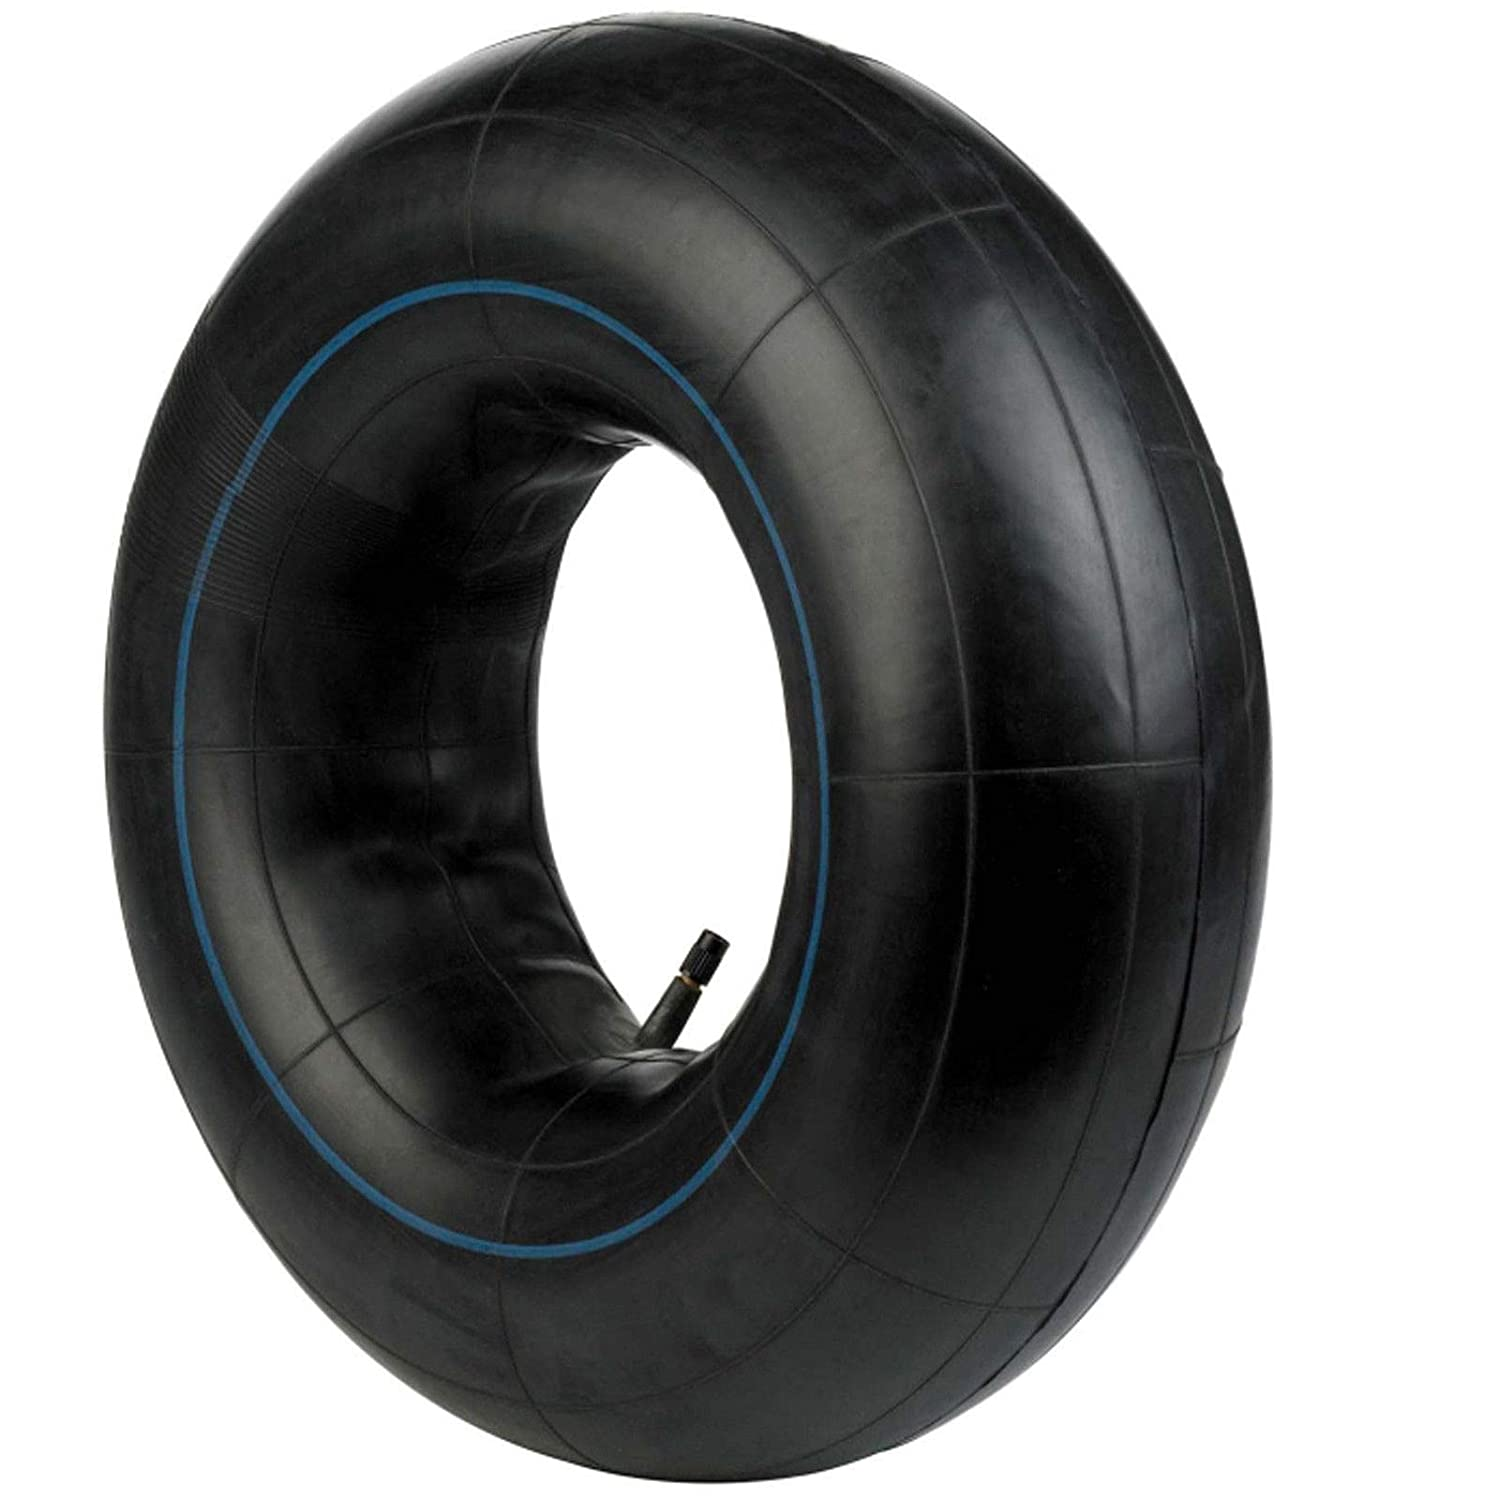 QUAD BIKES AND AGRICULTURAL MACHINERY BITS4REASONS MAYPOLE MP2150 MULTIPURPOSE 8 INCH INNER TUBE 3.50//4.00 X 8 350//400 x 8 16 X 4 TR13 STRAIGHT RUBBER VALVE -FITS TRAILERS KARTS WHEELBARROWS